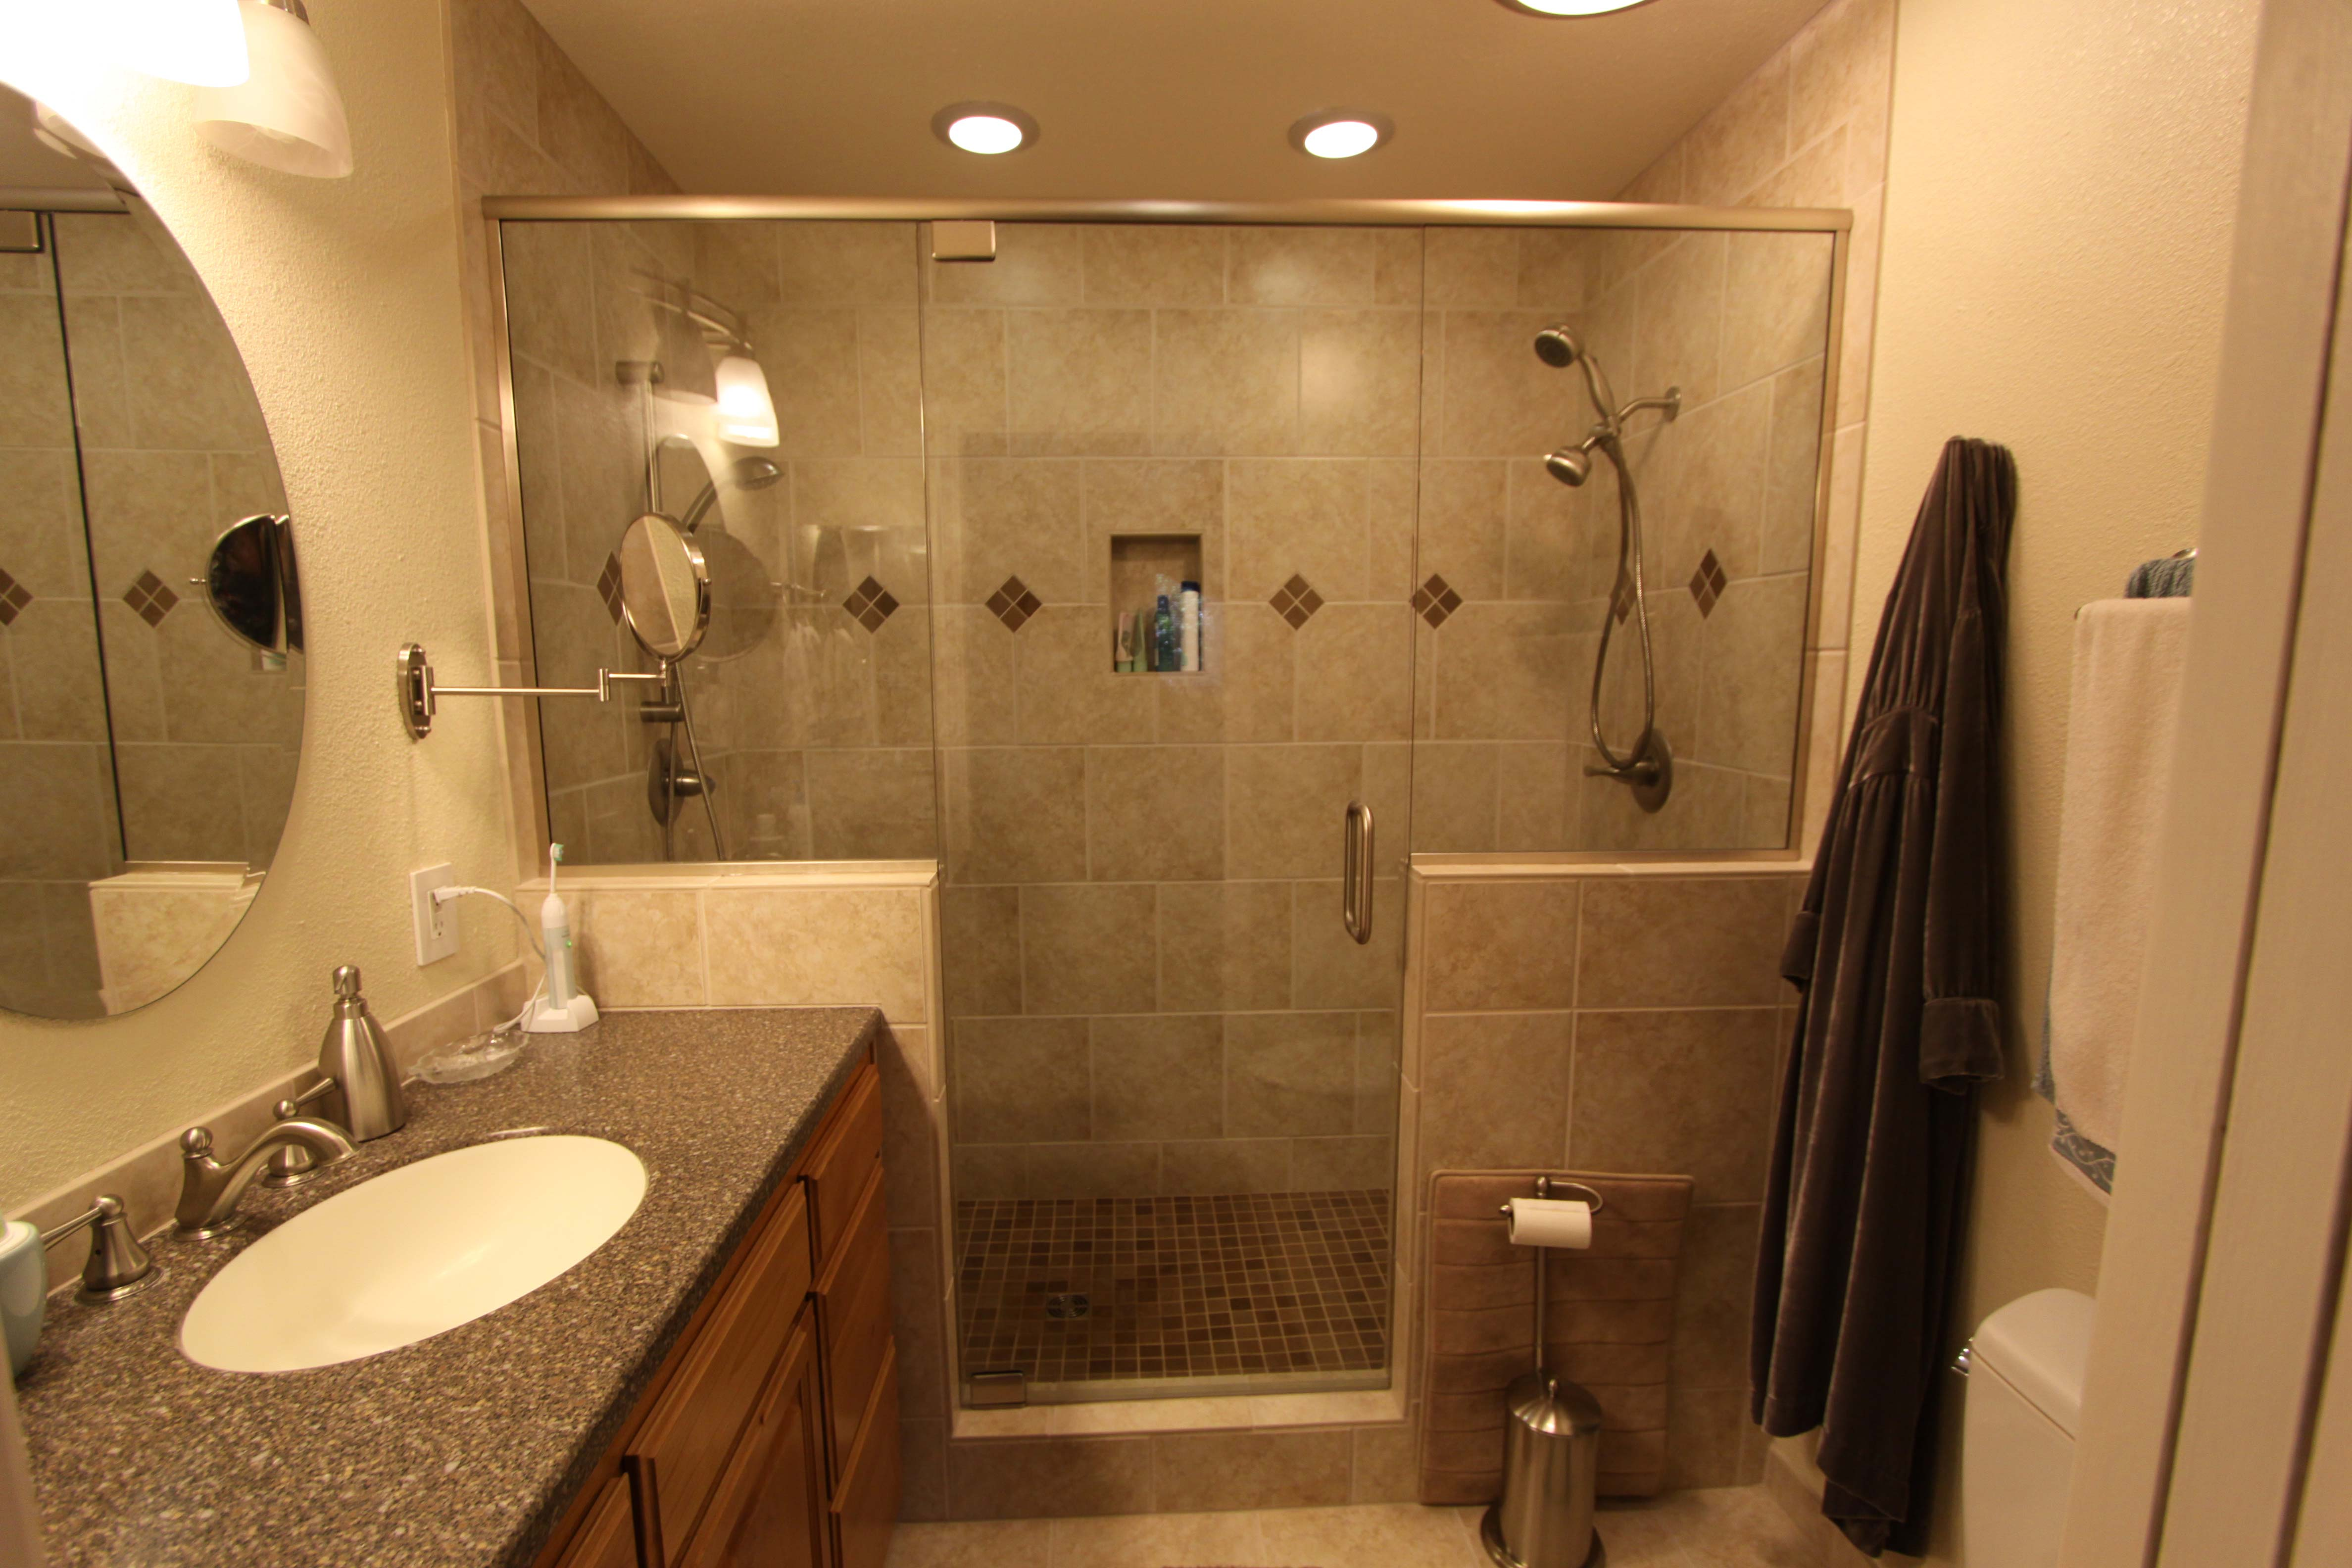 Bathrooms Southington CT Plainville CT Bristol CT Apple Valley - Bathroom remodeling southington ct